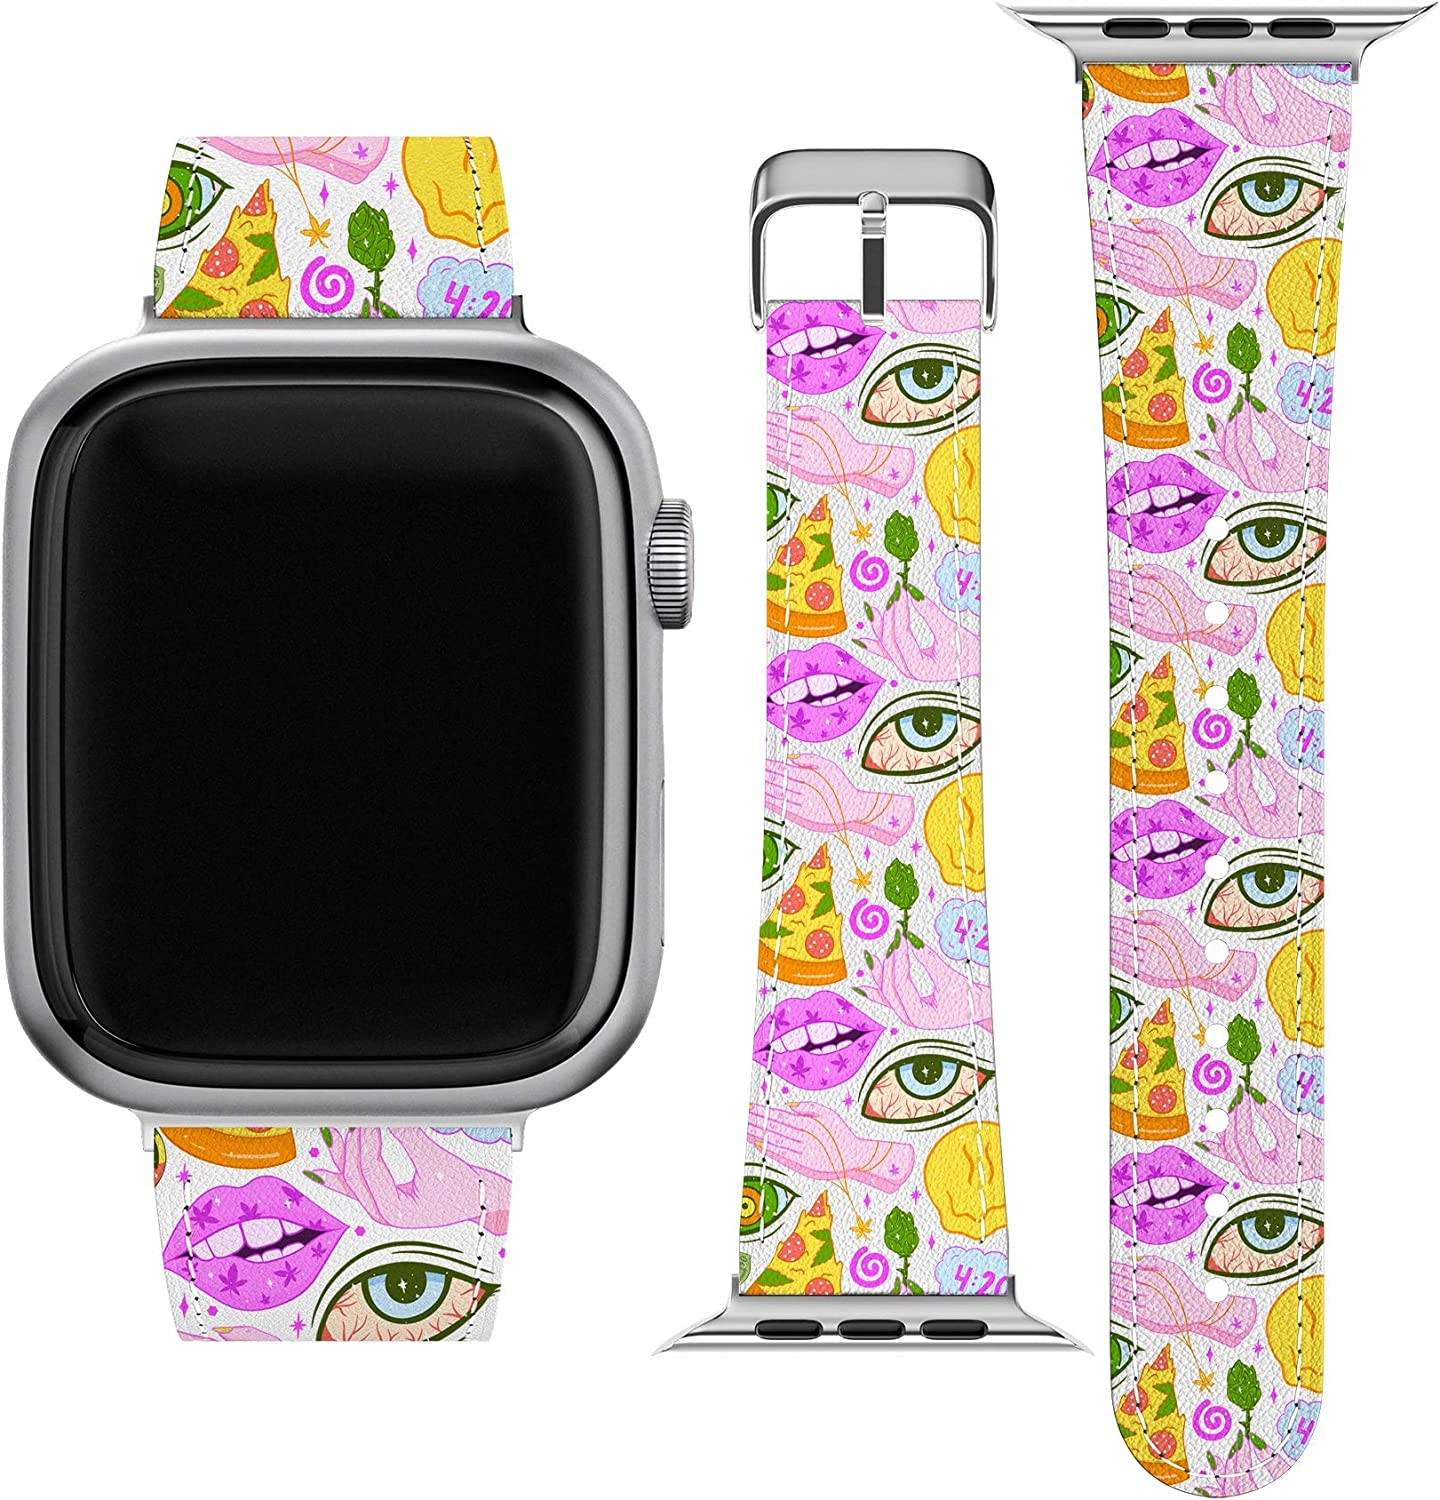 Lex Altern Band Compatible with Apple Watch Series 6 SE 5 4 3 2 1 38mm 40mm 42mm 44mm Thin Weed Pizza Trippy Marijuana Leaf Durable Replacement Strap for iWatch Stylish Cool Smoking Wristband wh433